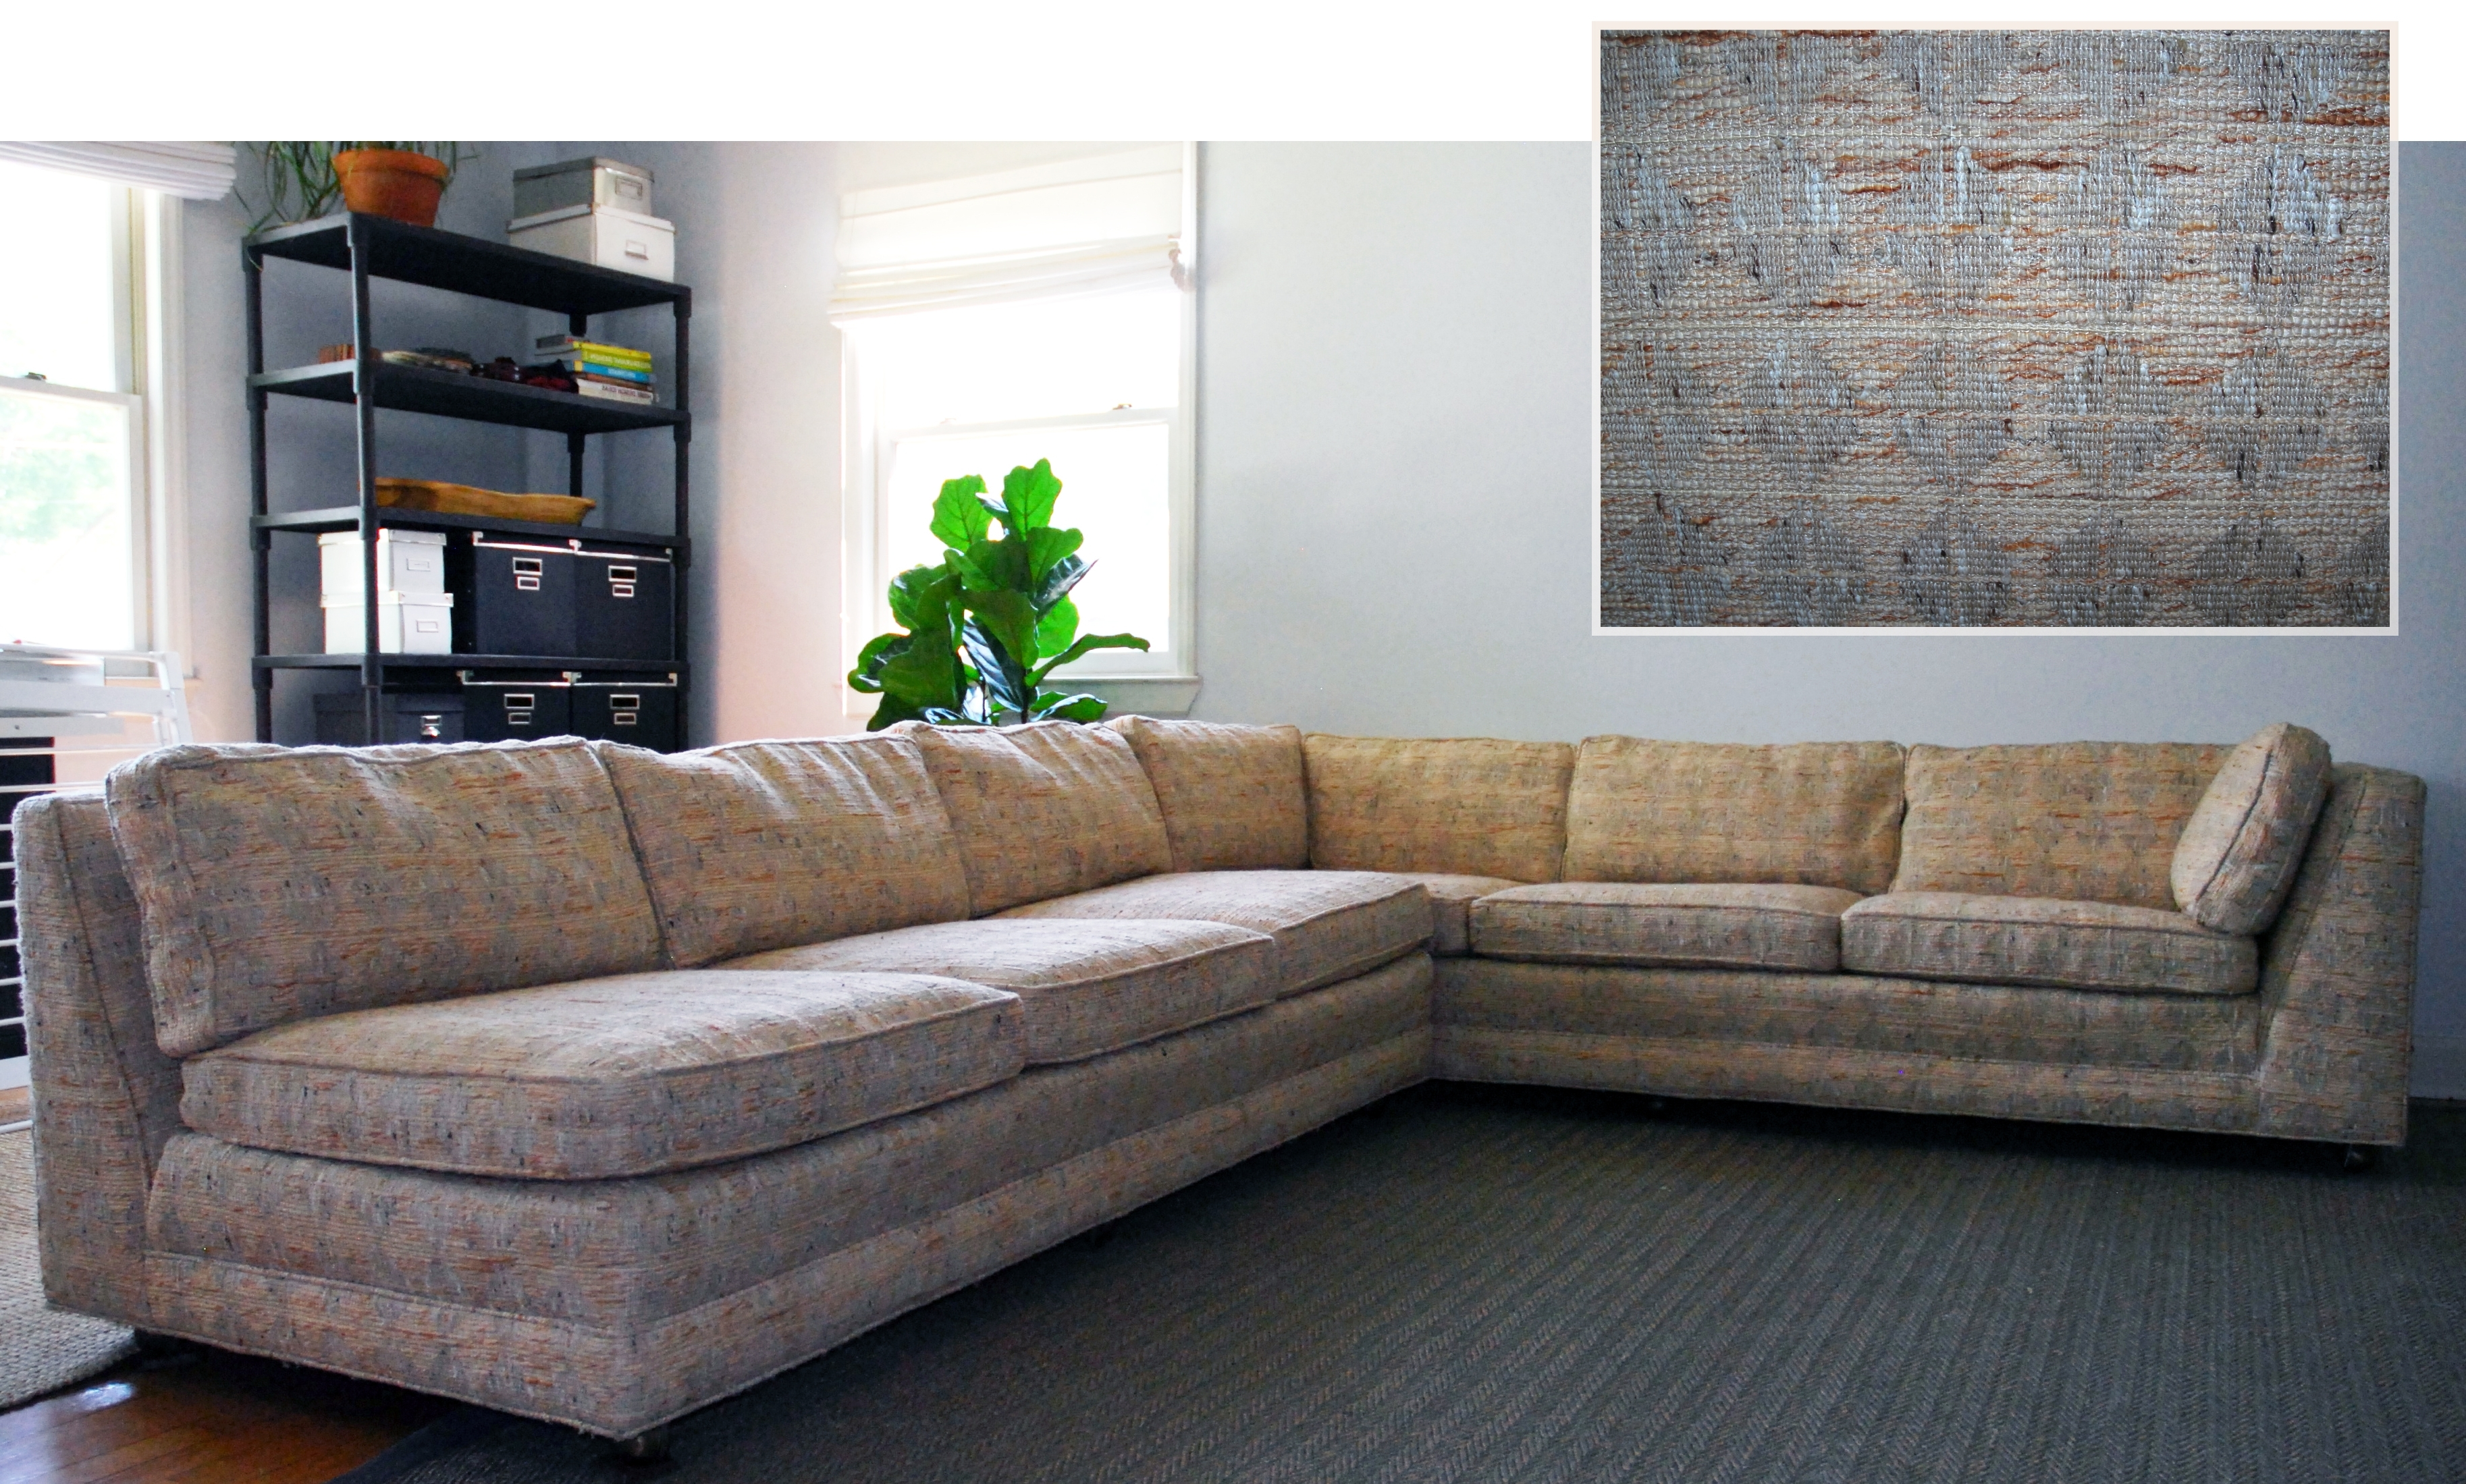 Fashionable 3 Piece Sectional Sleeper Sofas Inside Epic Henredon Sectional Sofa 95 With Additional 3 Piece Sectional (View 17 of 20)